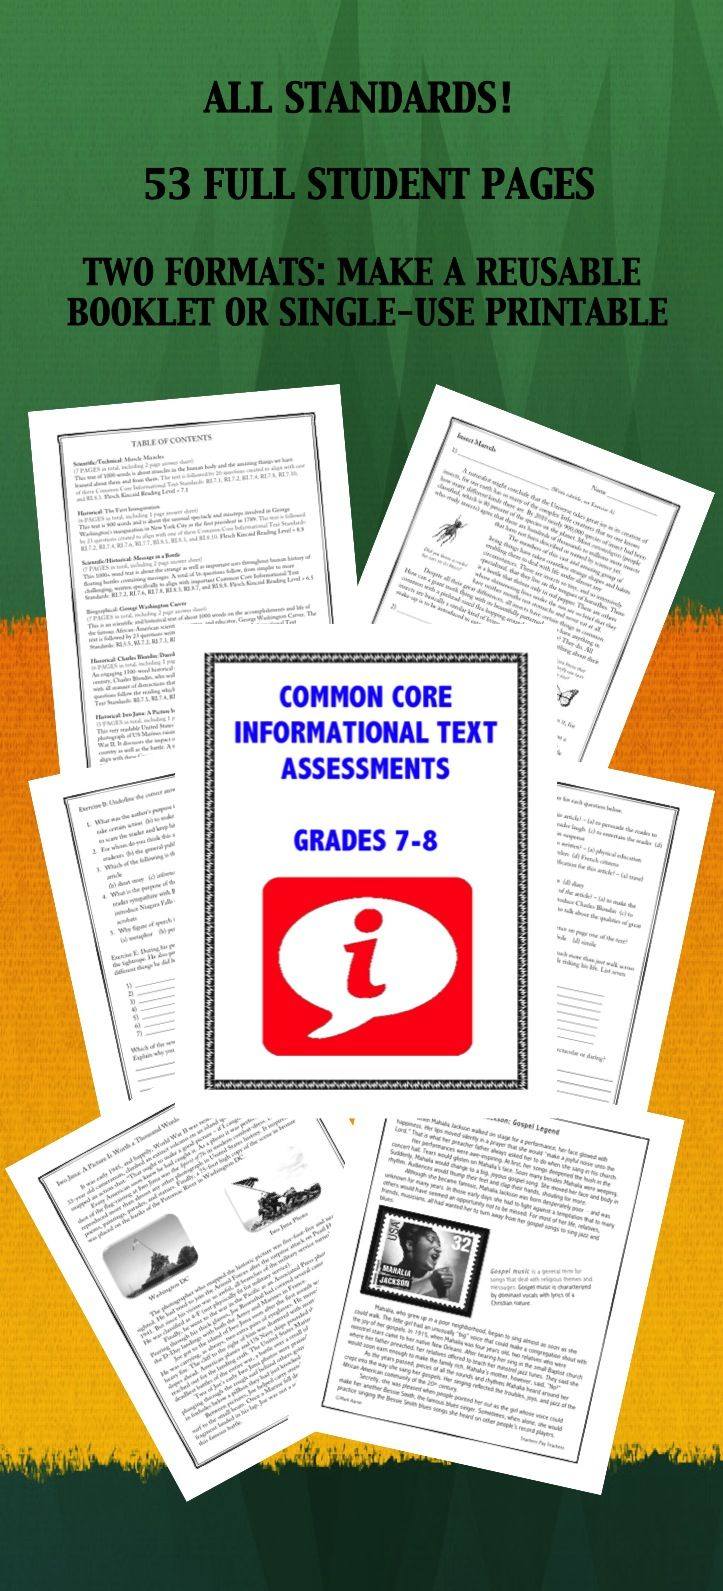 The collection helps assess 25 different Common Core Informational Text skills for Grades 6-8, including all 20 for Grades 7-8 $